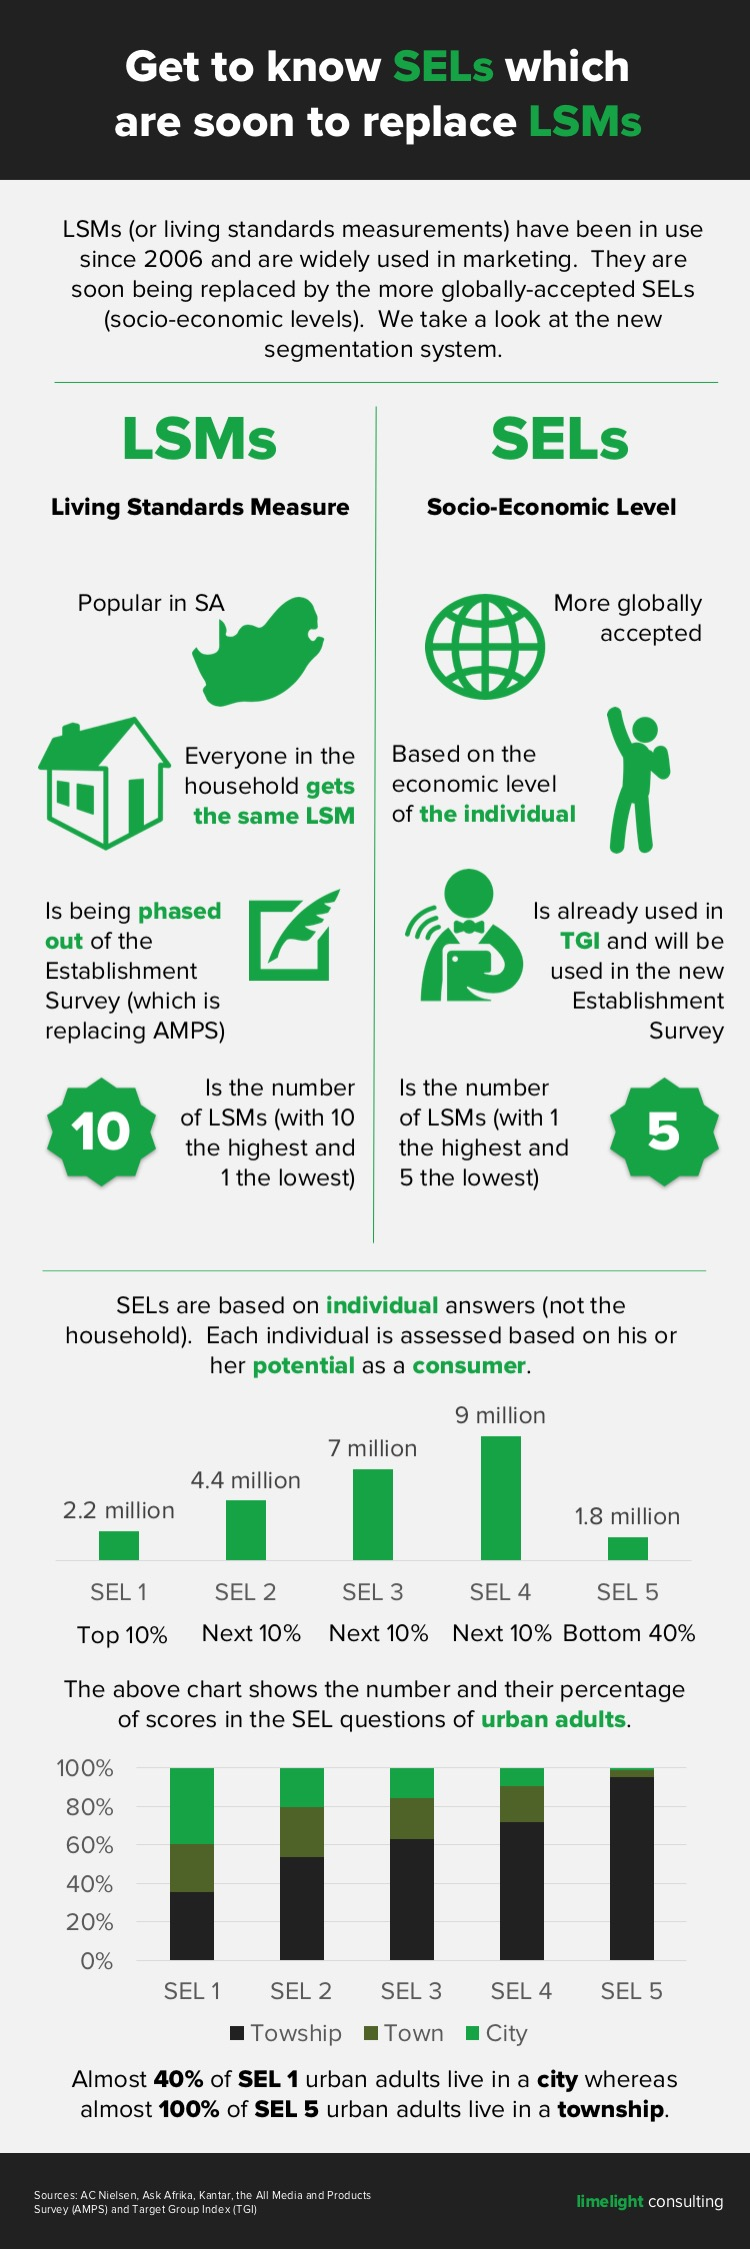 LSM vs SEL. Limelight Consulting